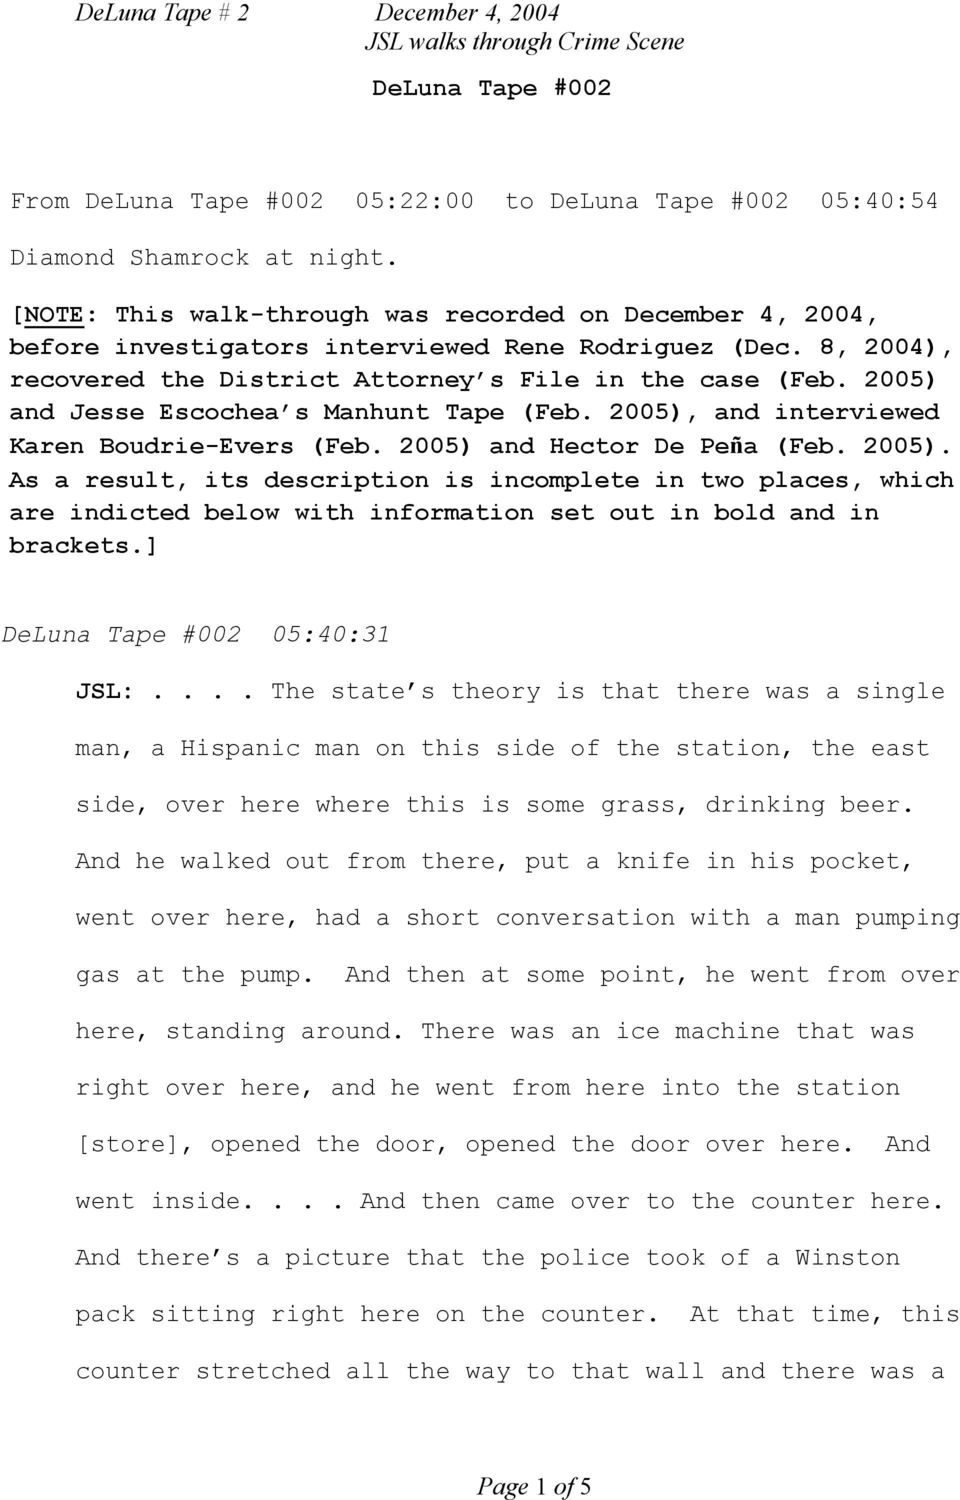 2005) and Jesse Escochea s Manhunt Tape (Feb. 2005), and interviewed Karen Boudrie-Evers (Feb. 2005) and Hector De Peña (Feb. 2005). As a result, its description is incomplete in two places, which are indicted below with information set out in bold and in brackets.